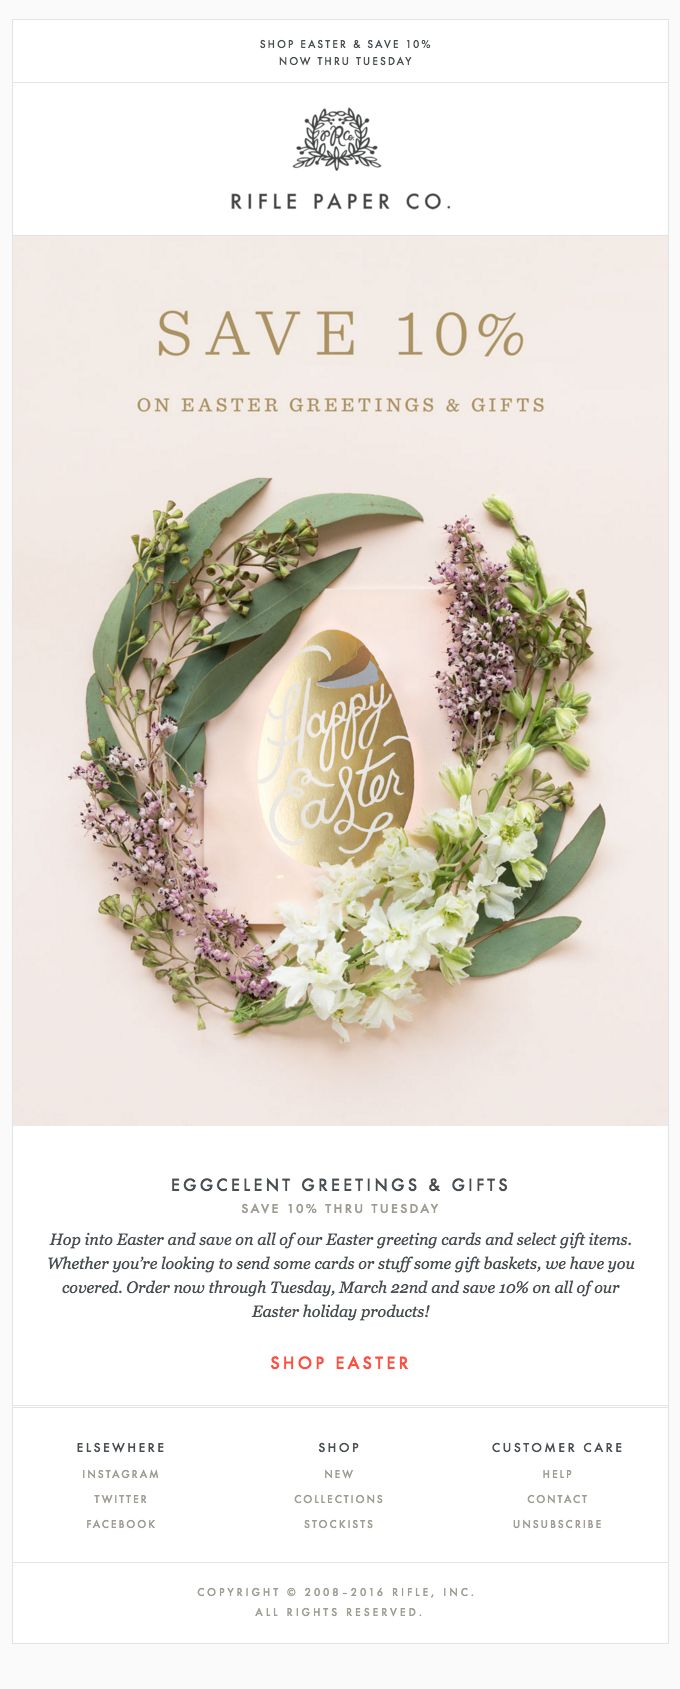 94 best easter emails images on pinterest email marketing eggcelent greetings gifts for easter really good emails negle Image collections